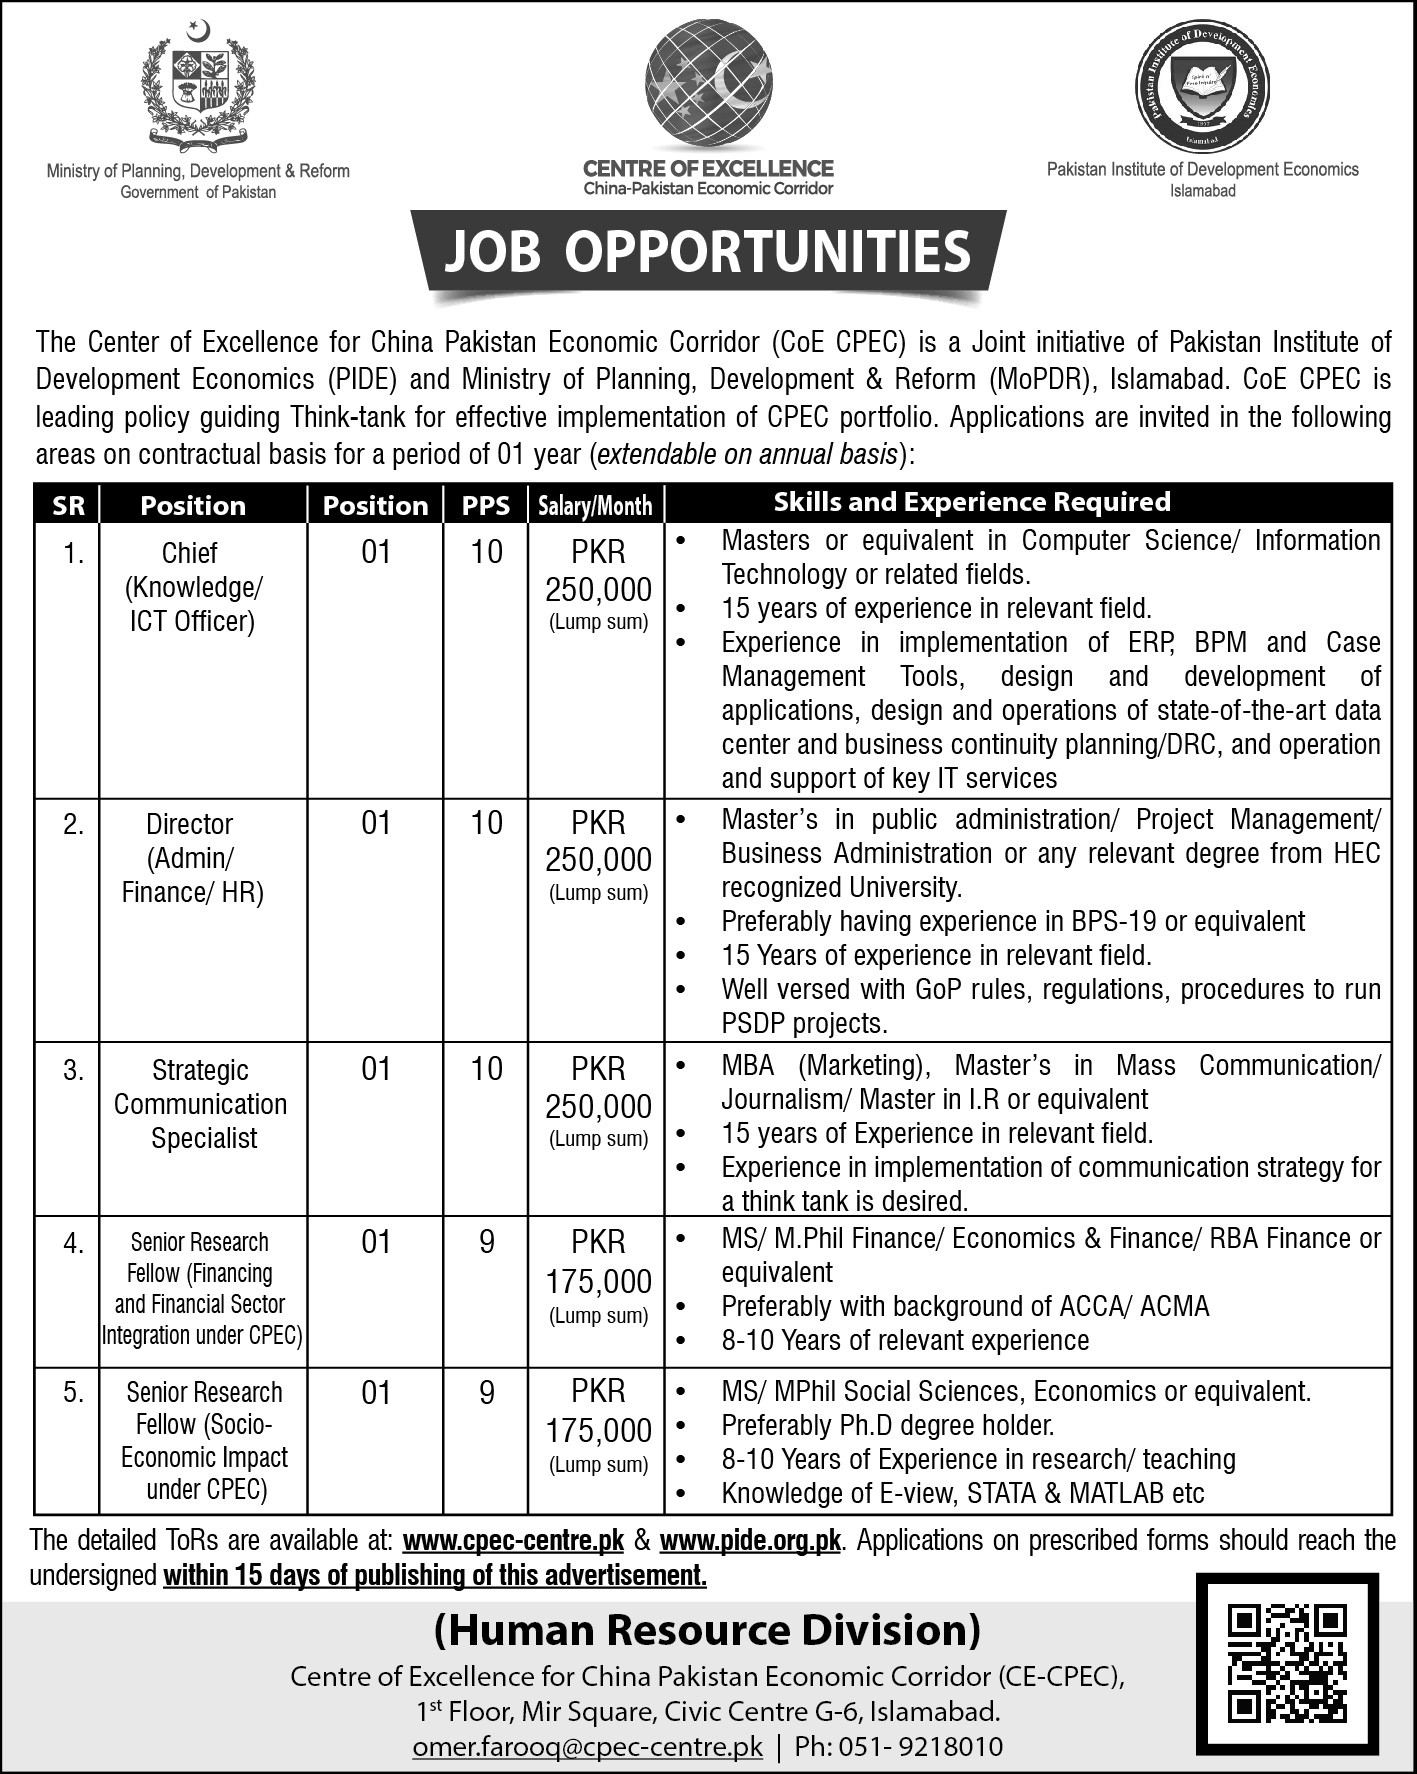 Jobs at CPEC Pakistan | CPEC Centre of Excellence